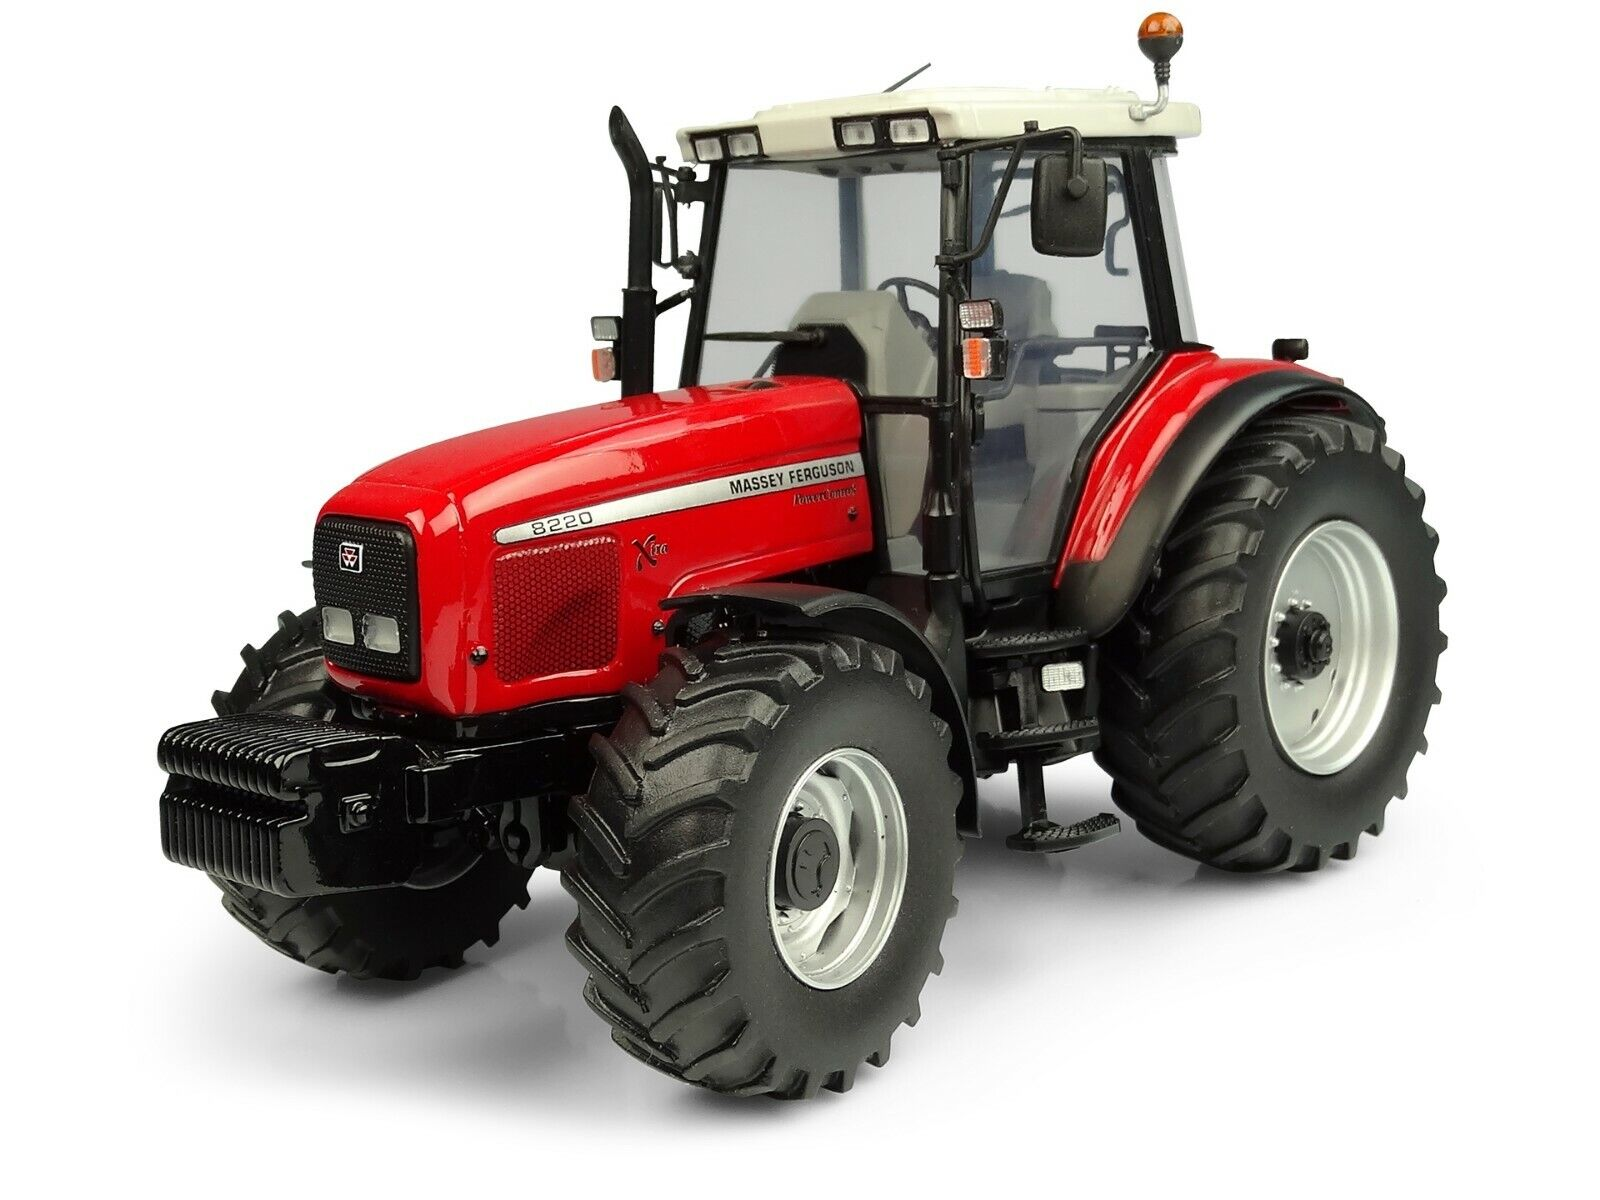 MASSEY FERGUSON 8220 XTRA TRACTOR 1 32 DIECAST MODEL BY UNIVERSAL HOBBIES UH5331